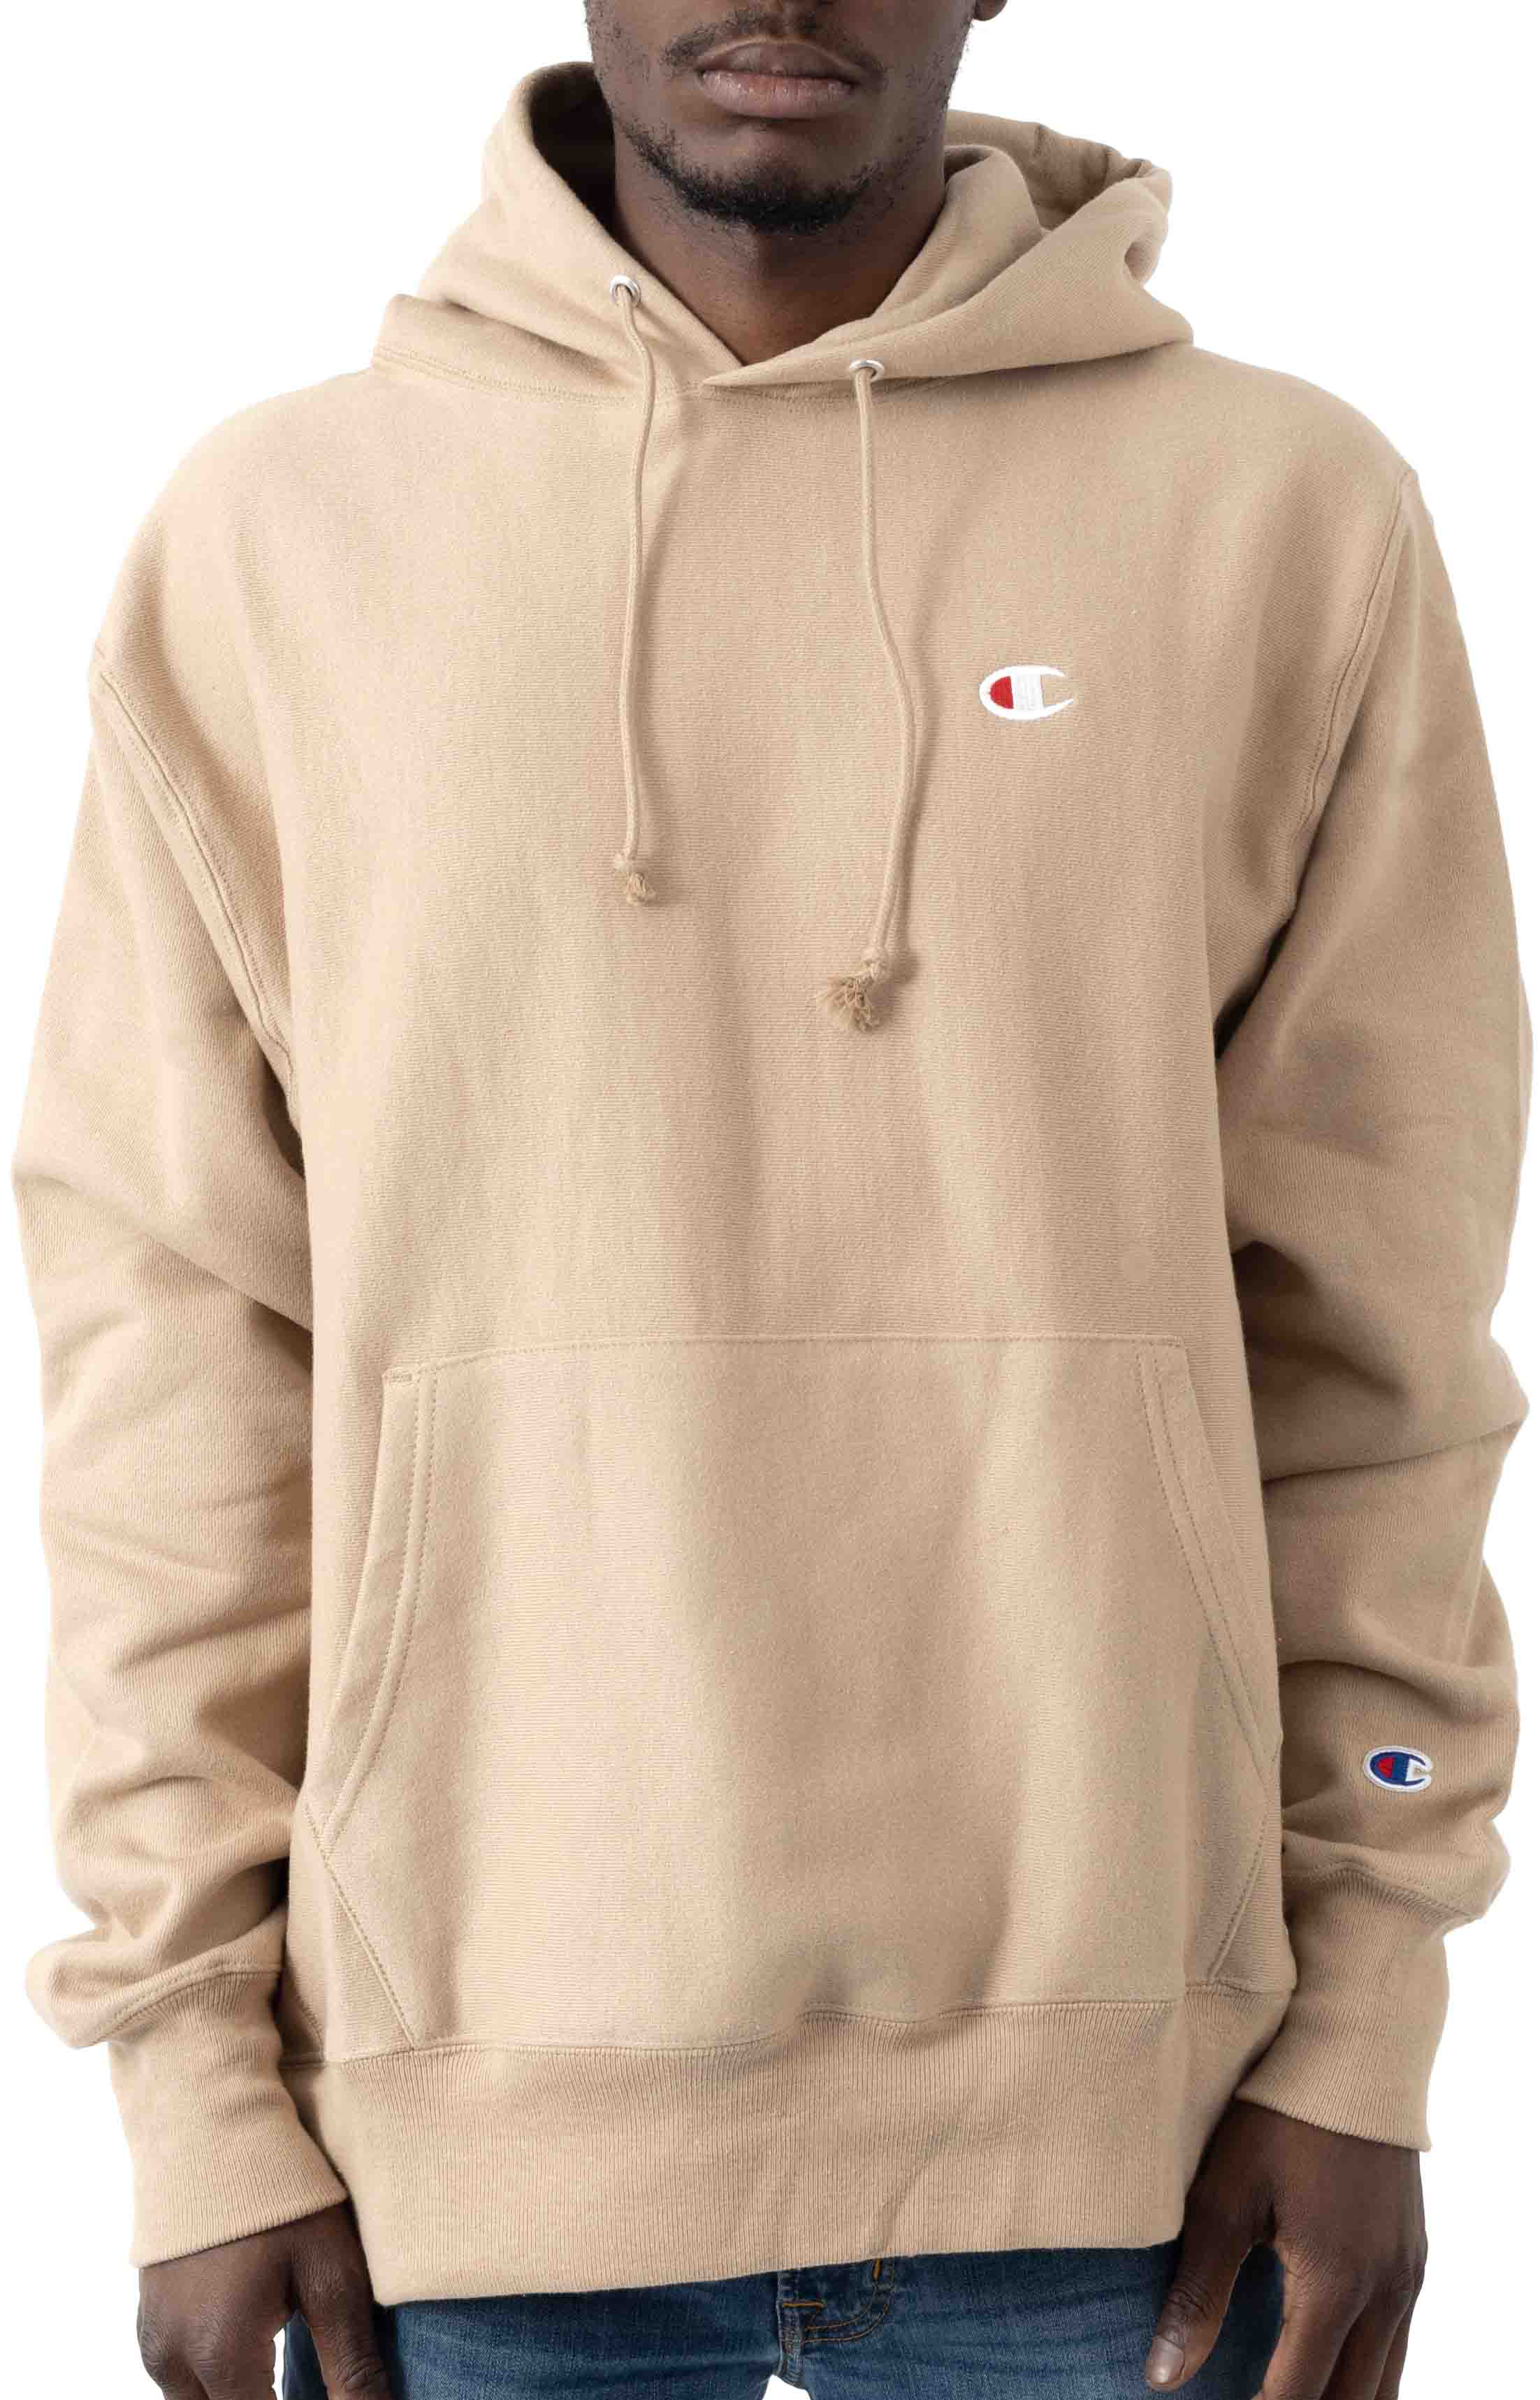 C Logo Reverse Weave Pullover Hoodie - Country Walnut